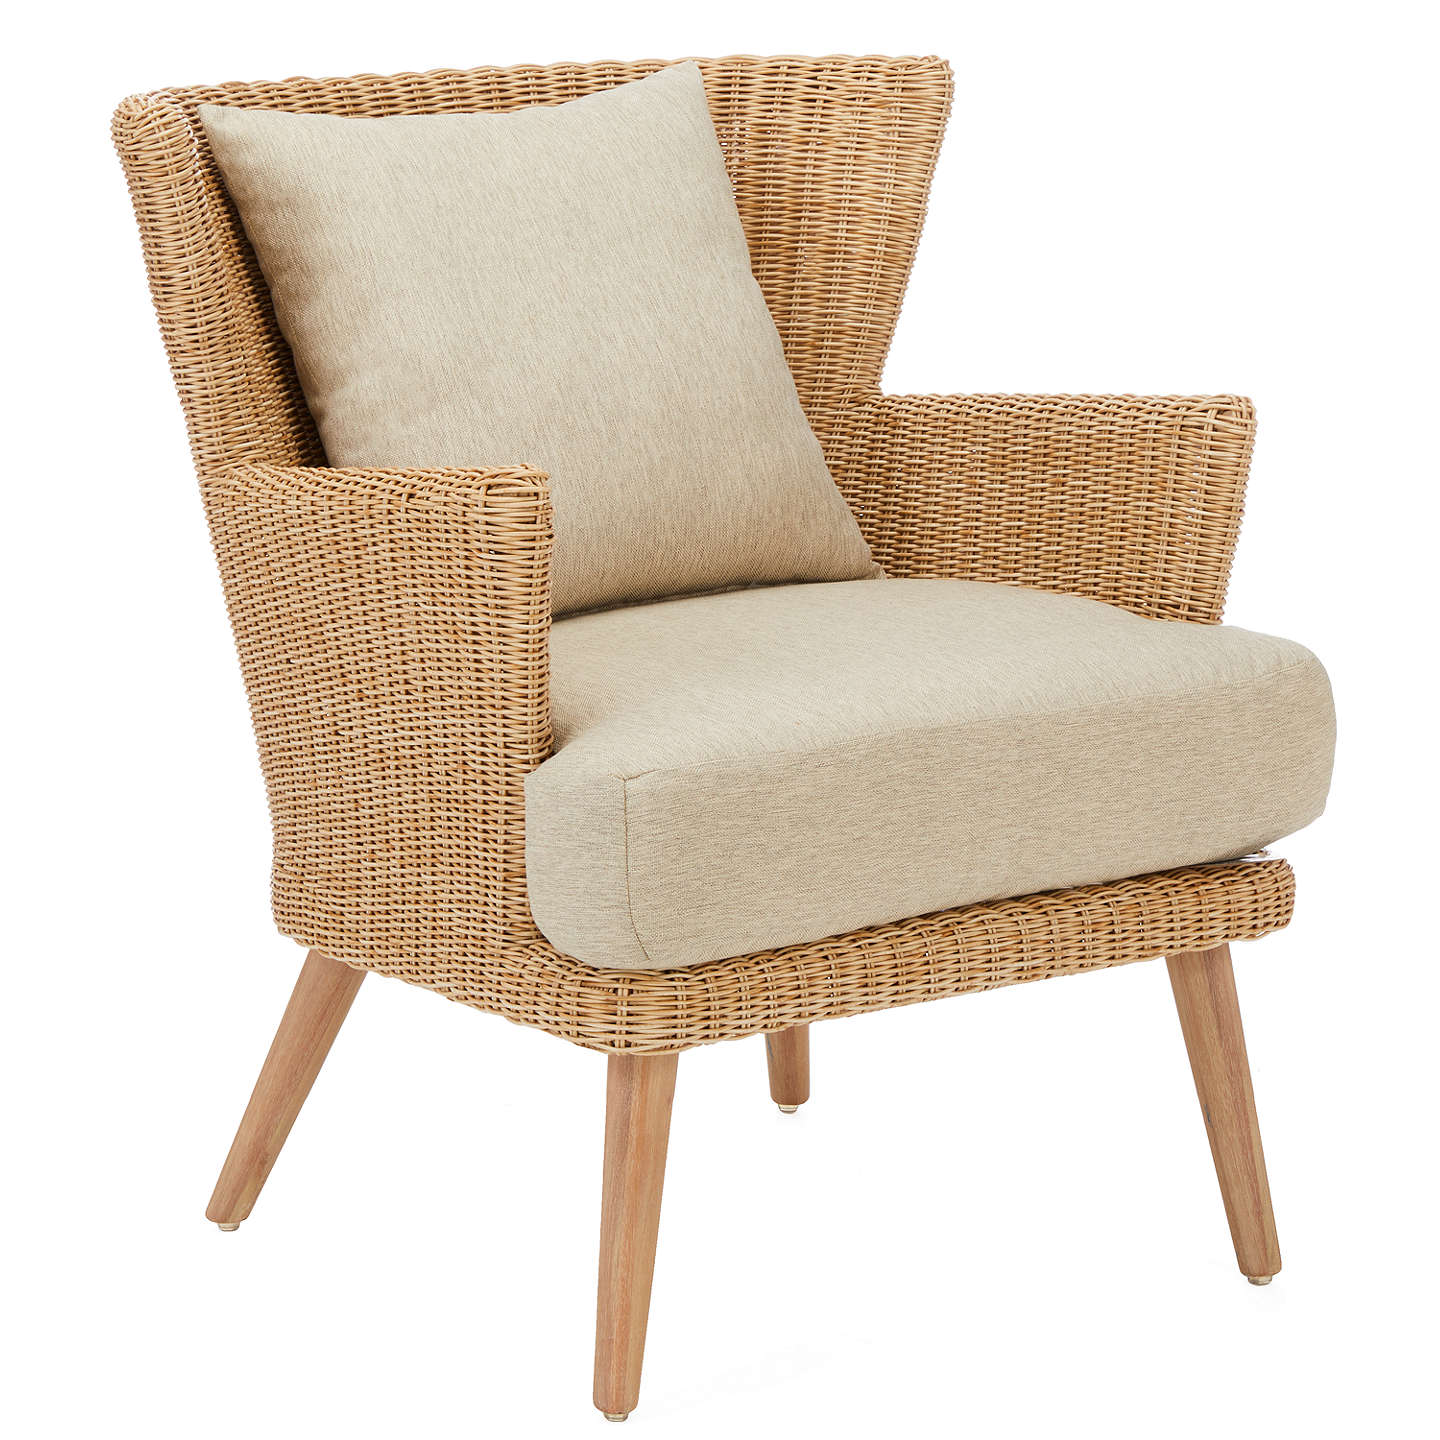 chairs and brands wicker piece conversation mor k p moroccan cushions club op cream set sets cannes with outdoor ottoman rst chair patio cns